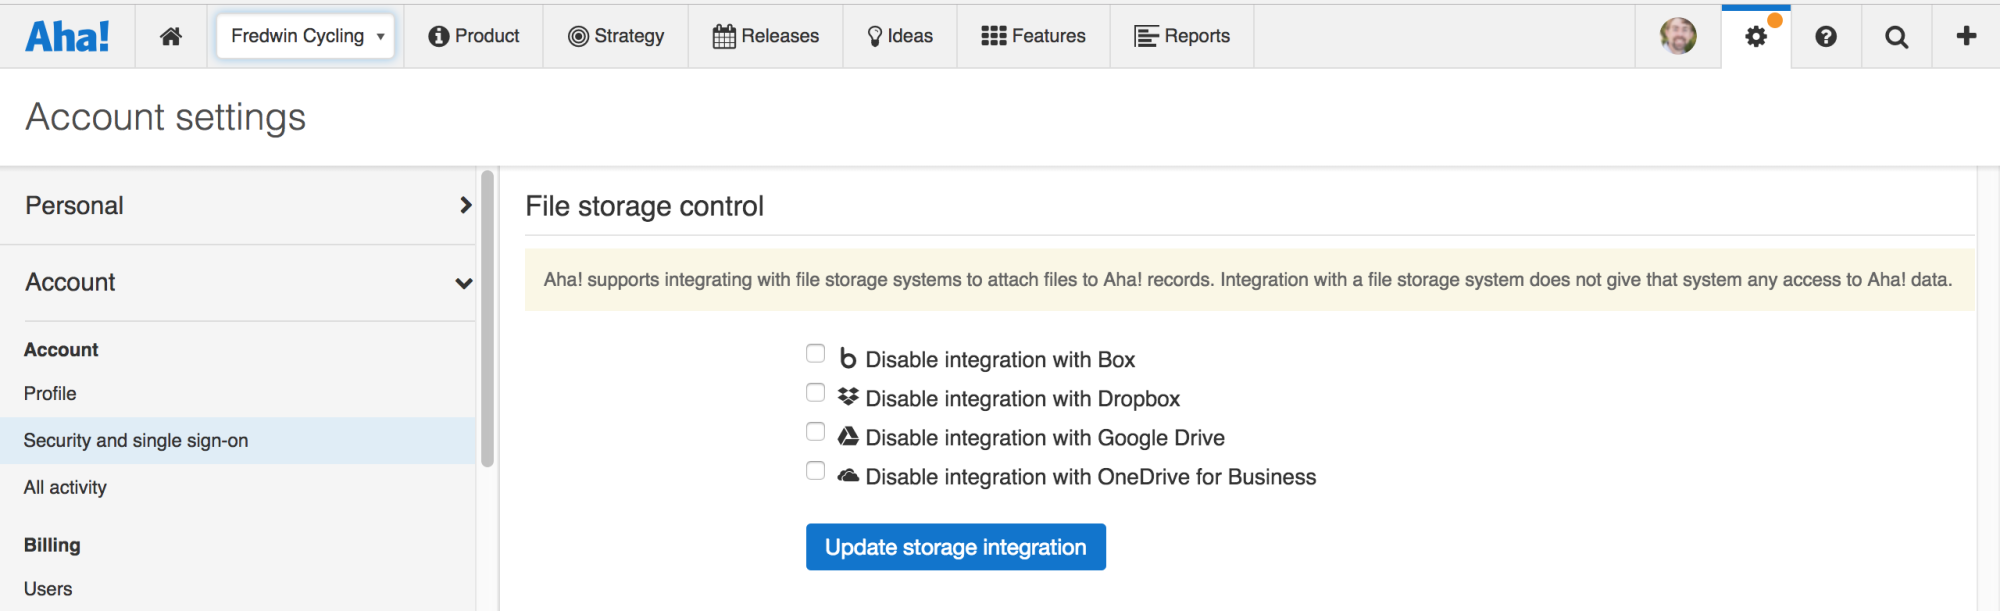 Support - Integrate Aha! with Dropbox - inline image